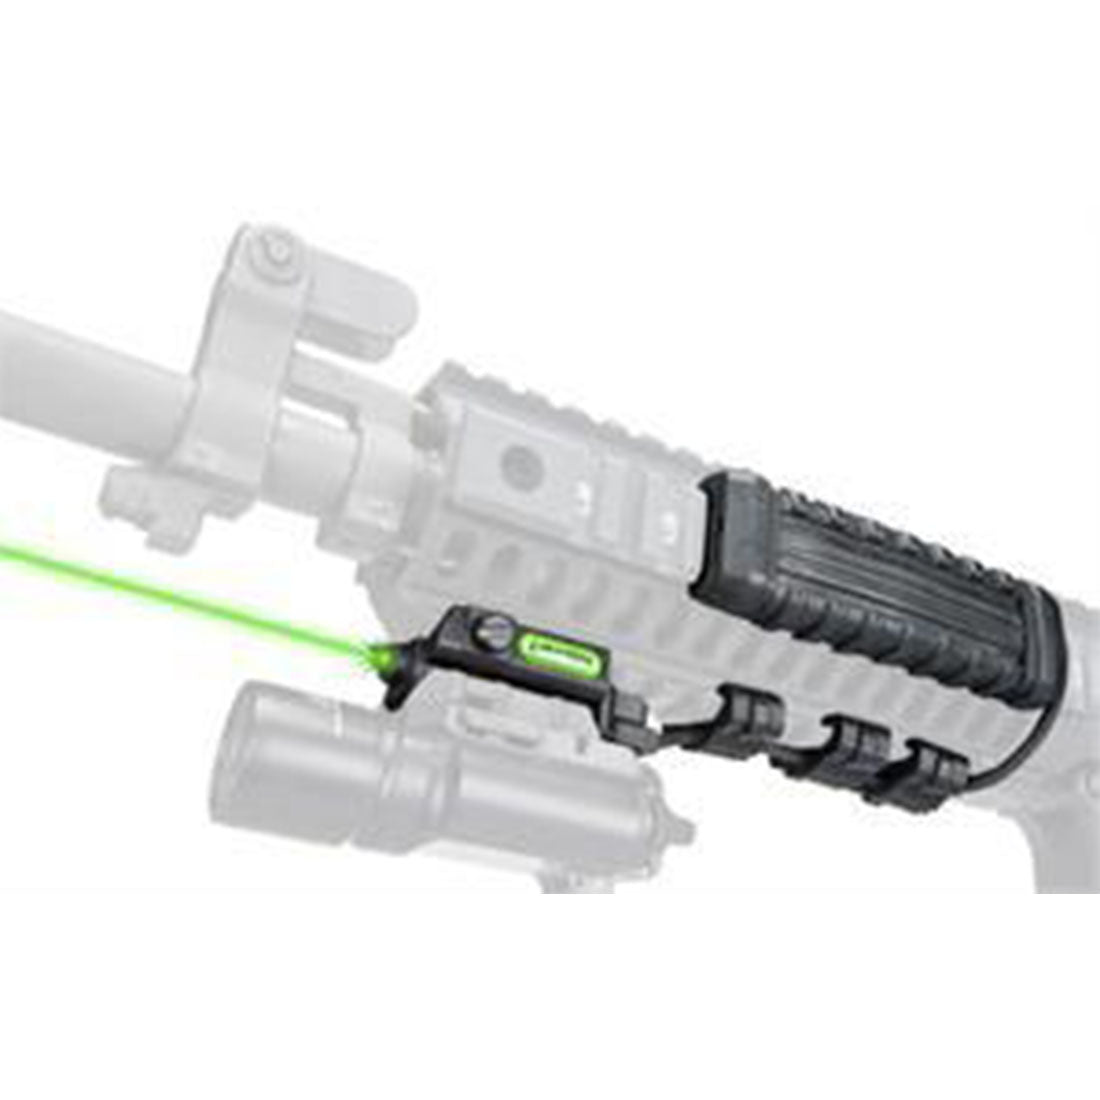 USNV Visible Green Laser Rifle Kit | Laser Rifle Kit